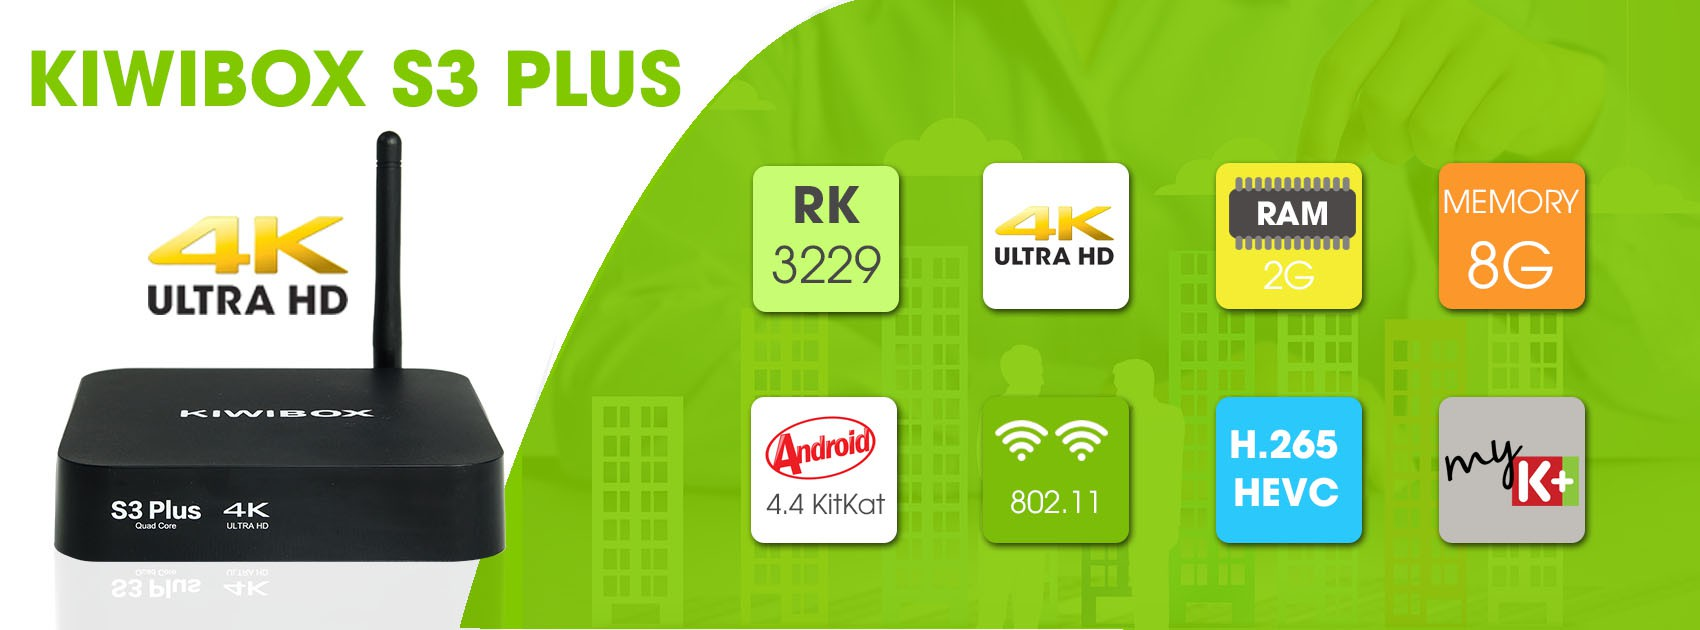 http://androidbox360.vn/android-tv-box-kiwi-box-s3-plus